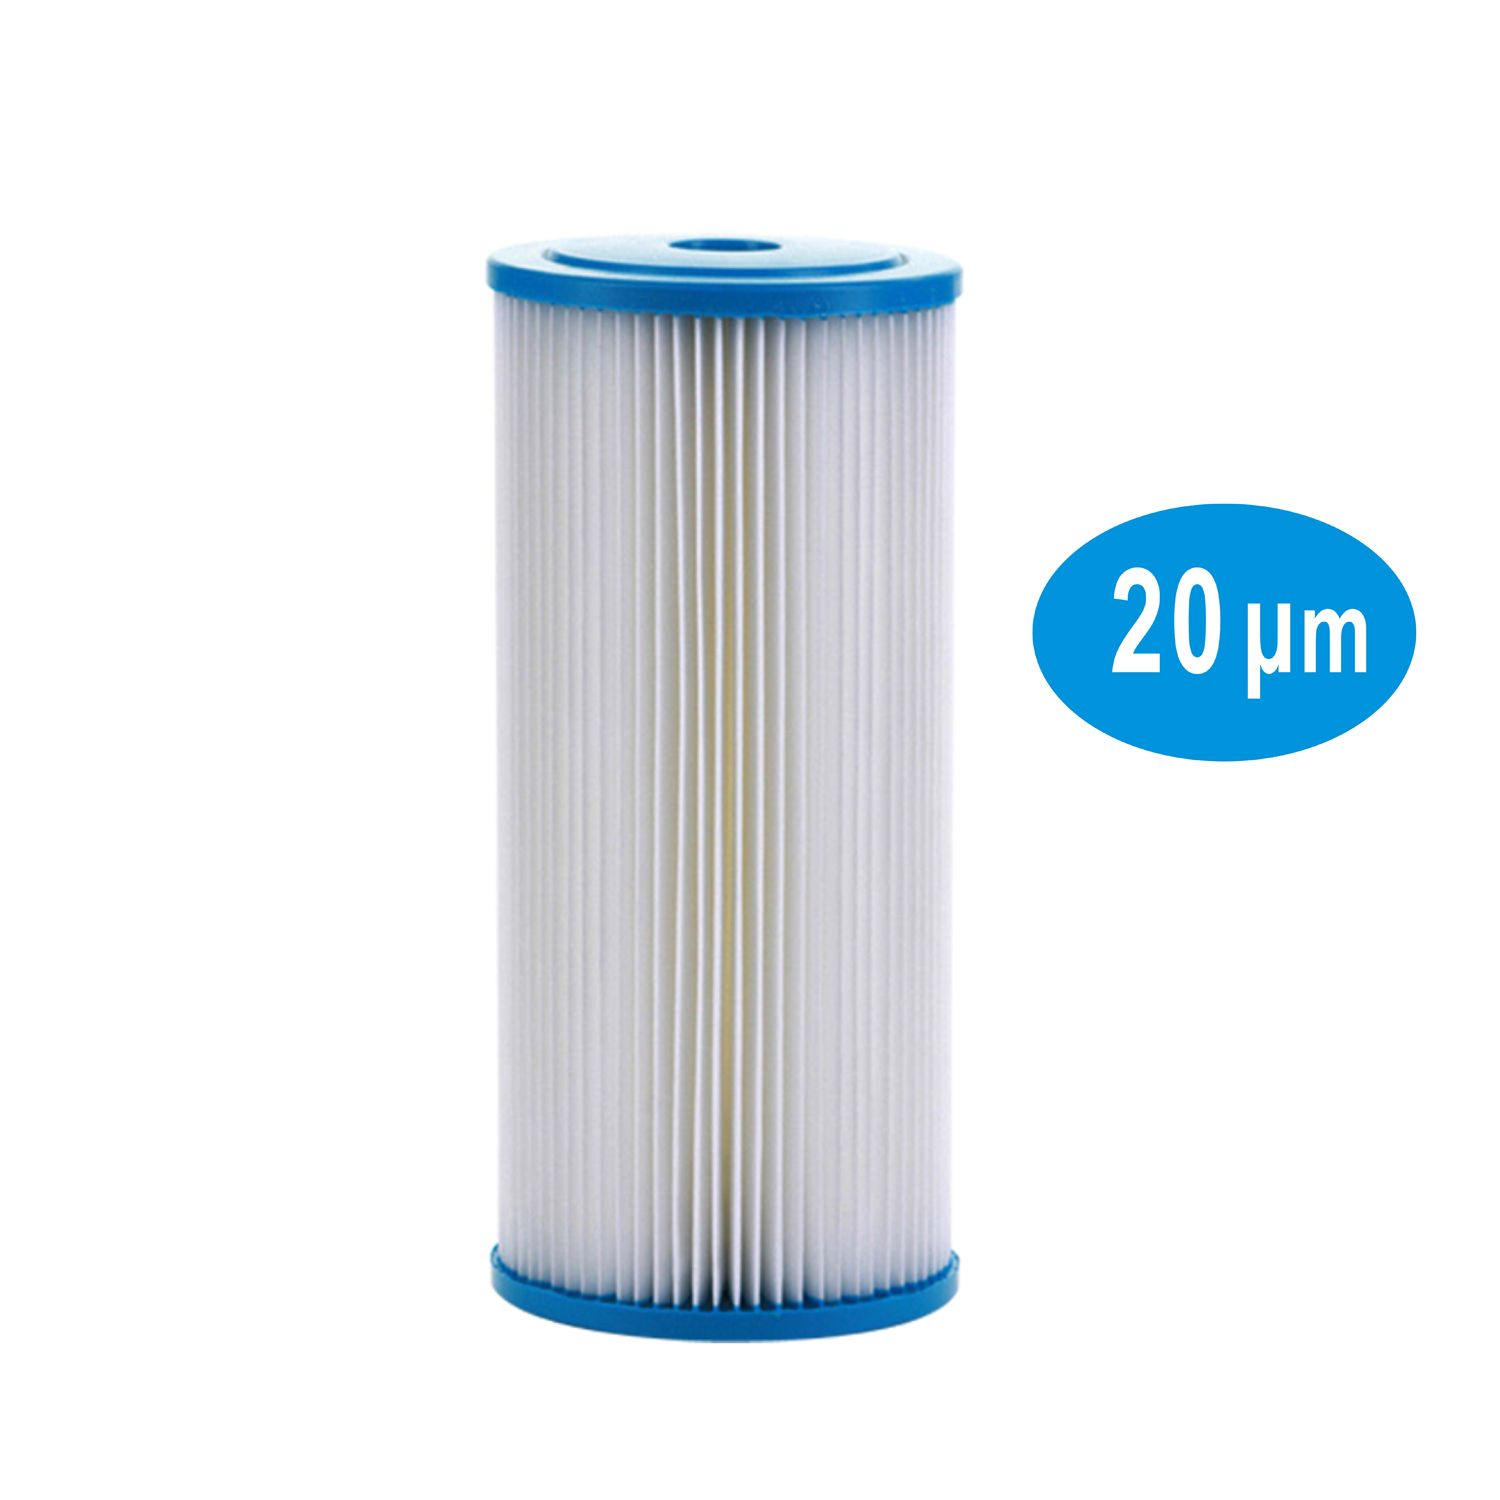 20mm Whole House Sediment Pleated Water Filter 4 5 Dia X 10 Long Washable Reusable In 2020 Water Filter Cartridge Water Filter Filters